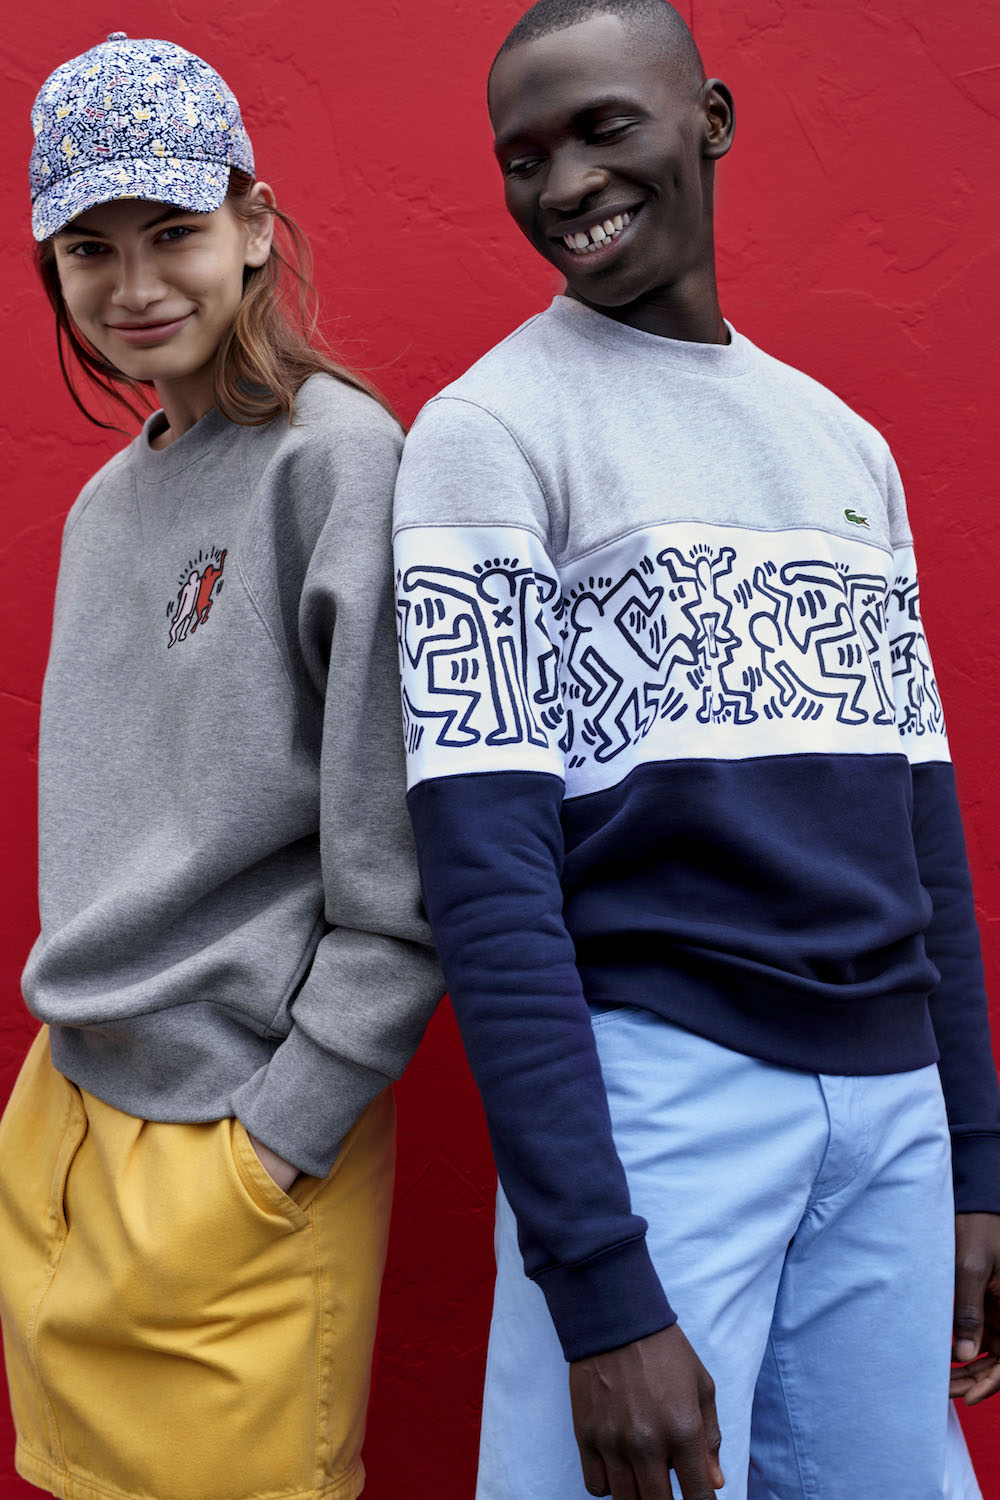 03_LACOSTE X KEITH HARING .jpg